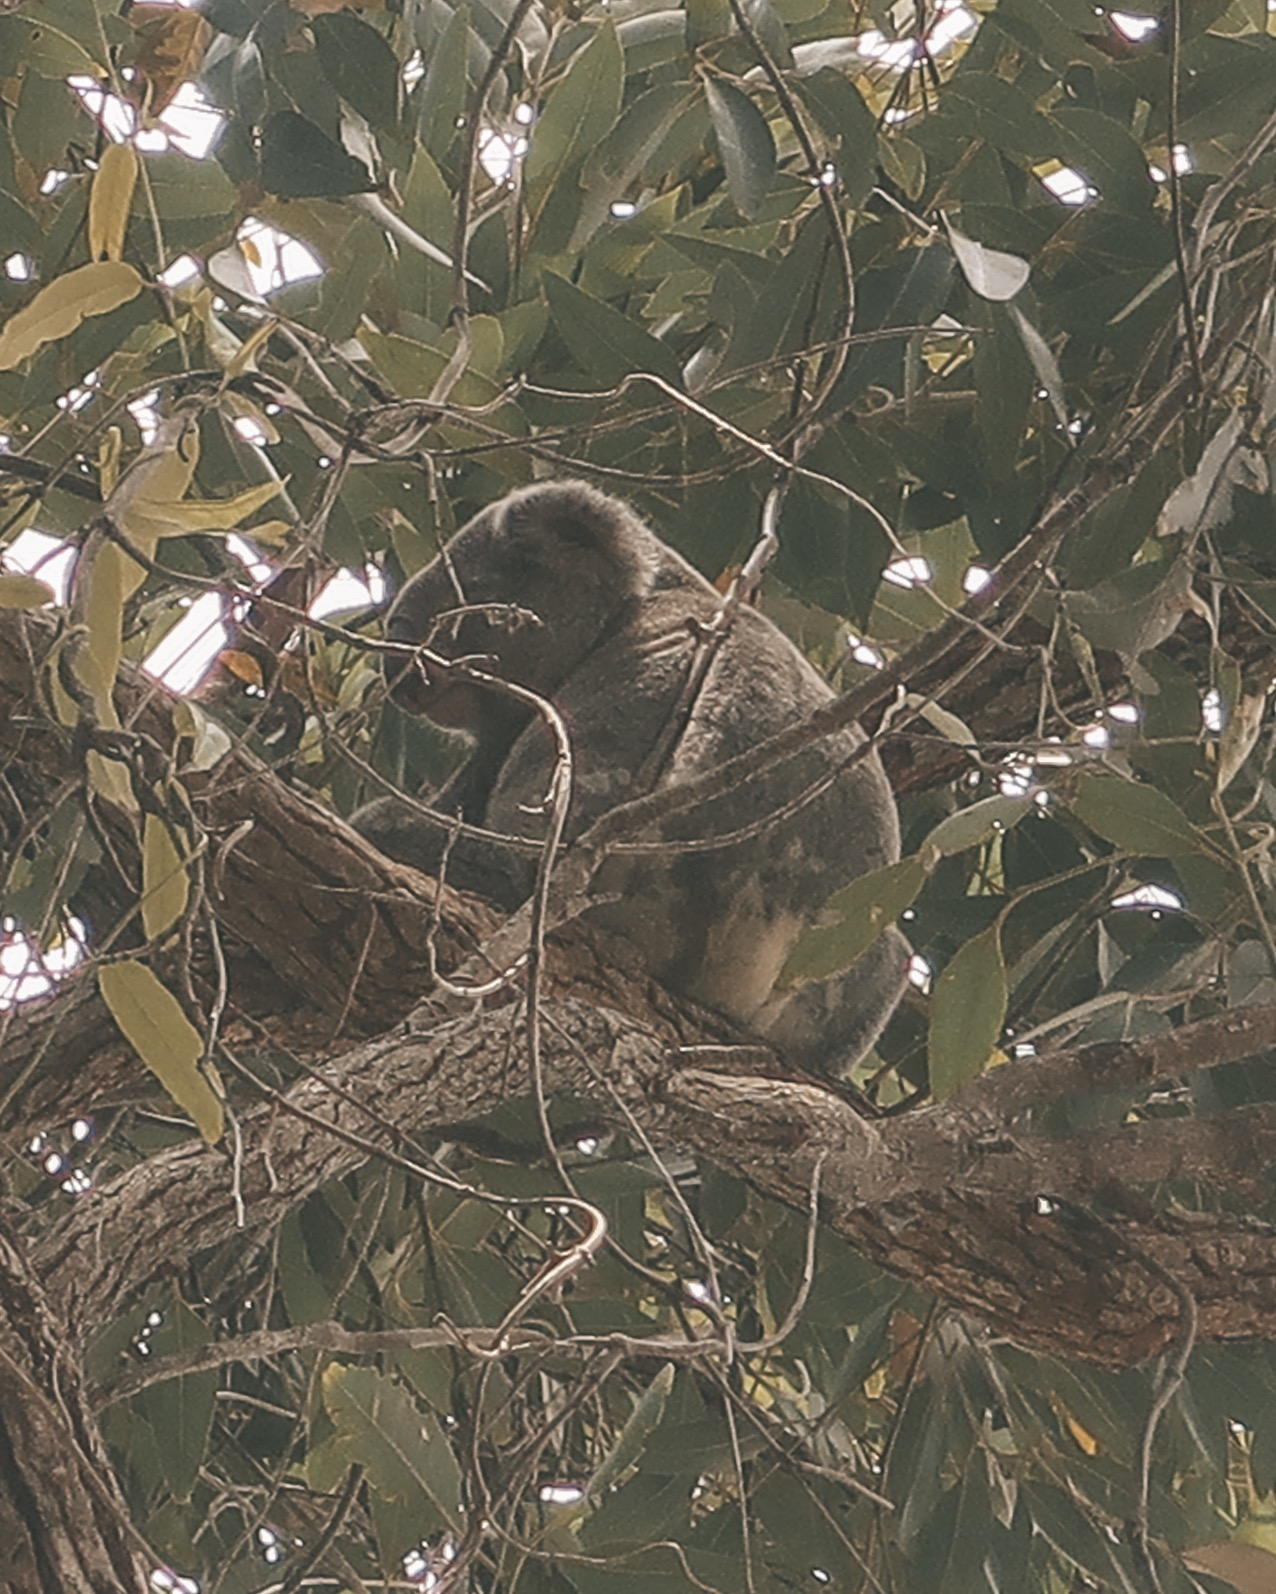 Honeymoon in Australia - Wild Koala Bear